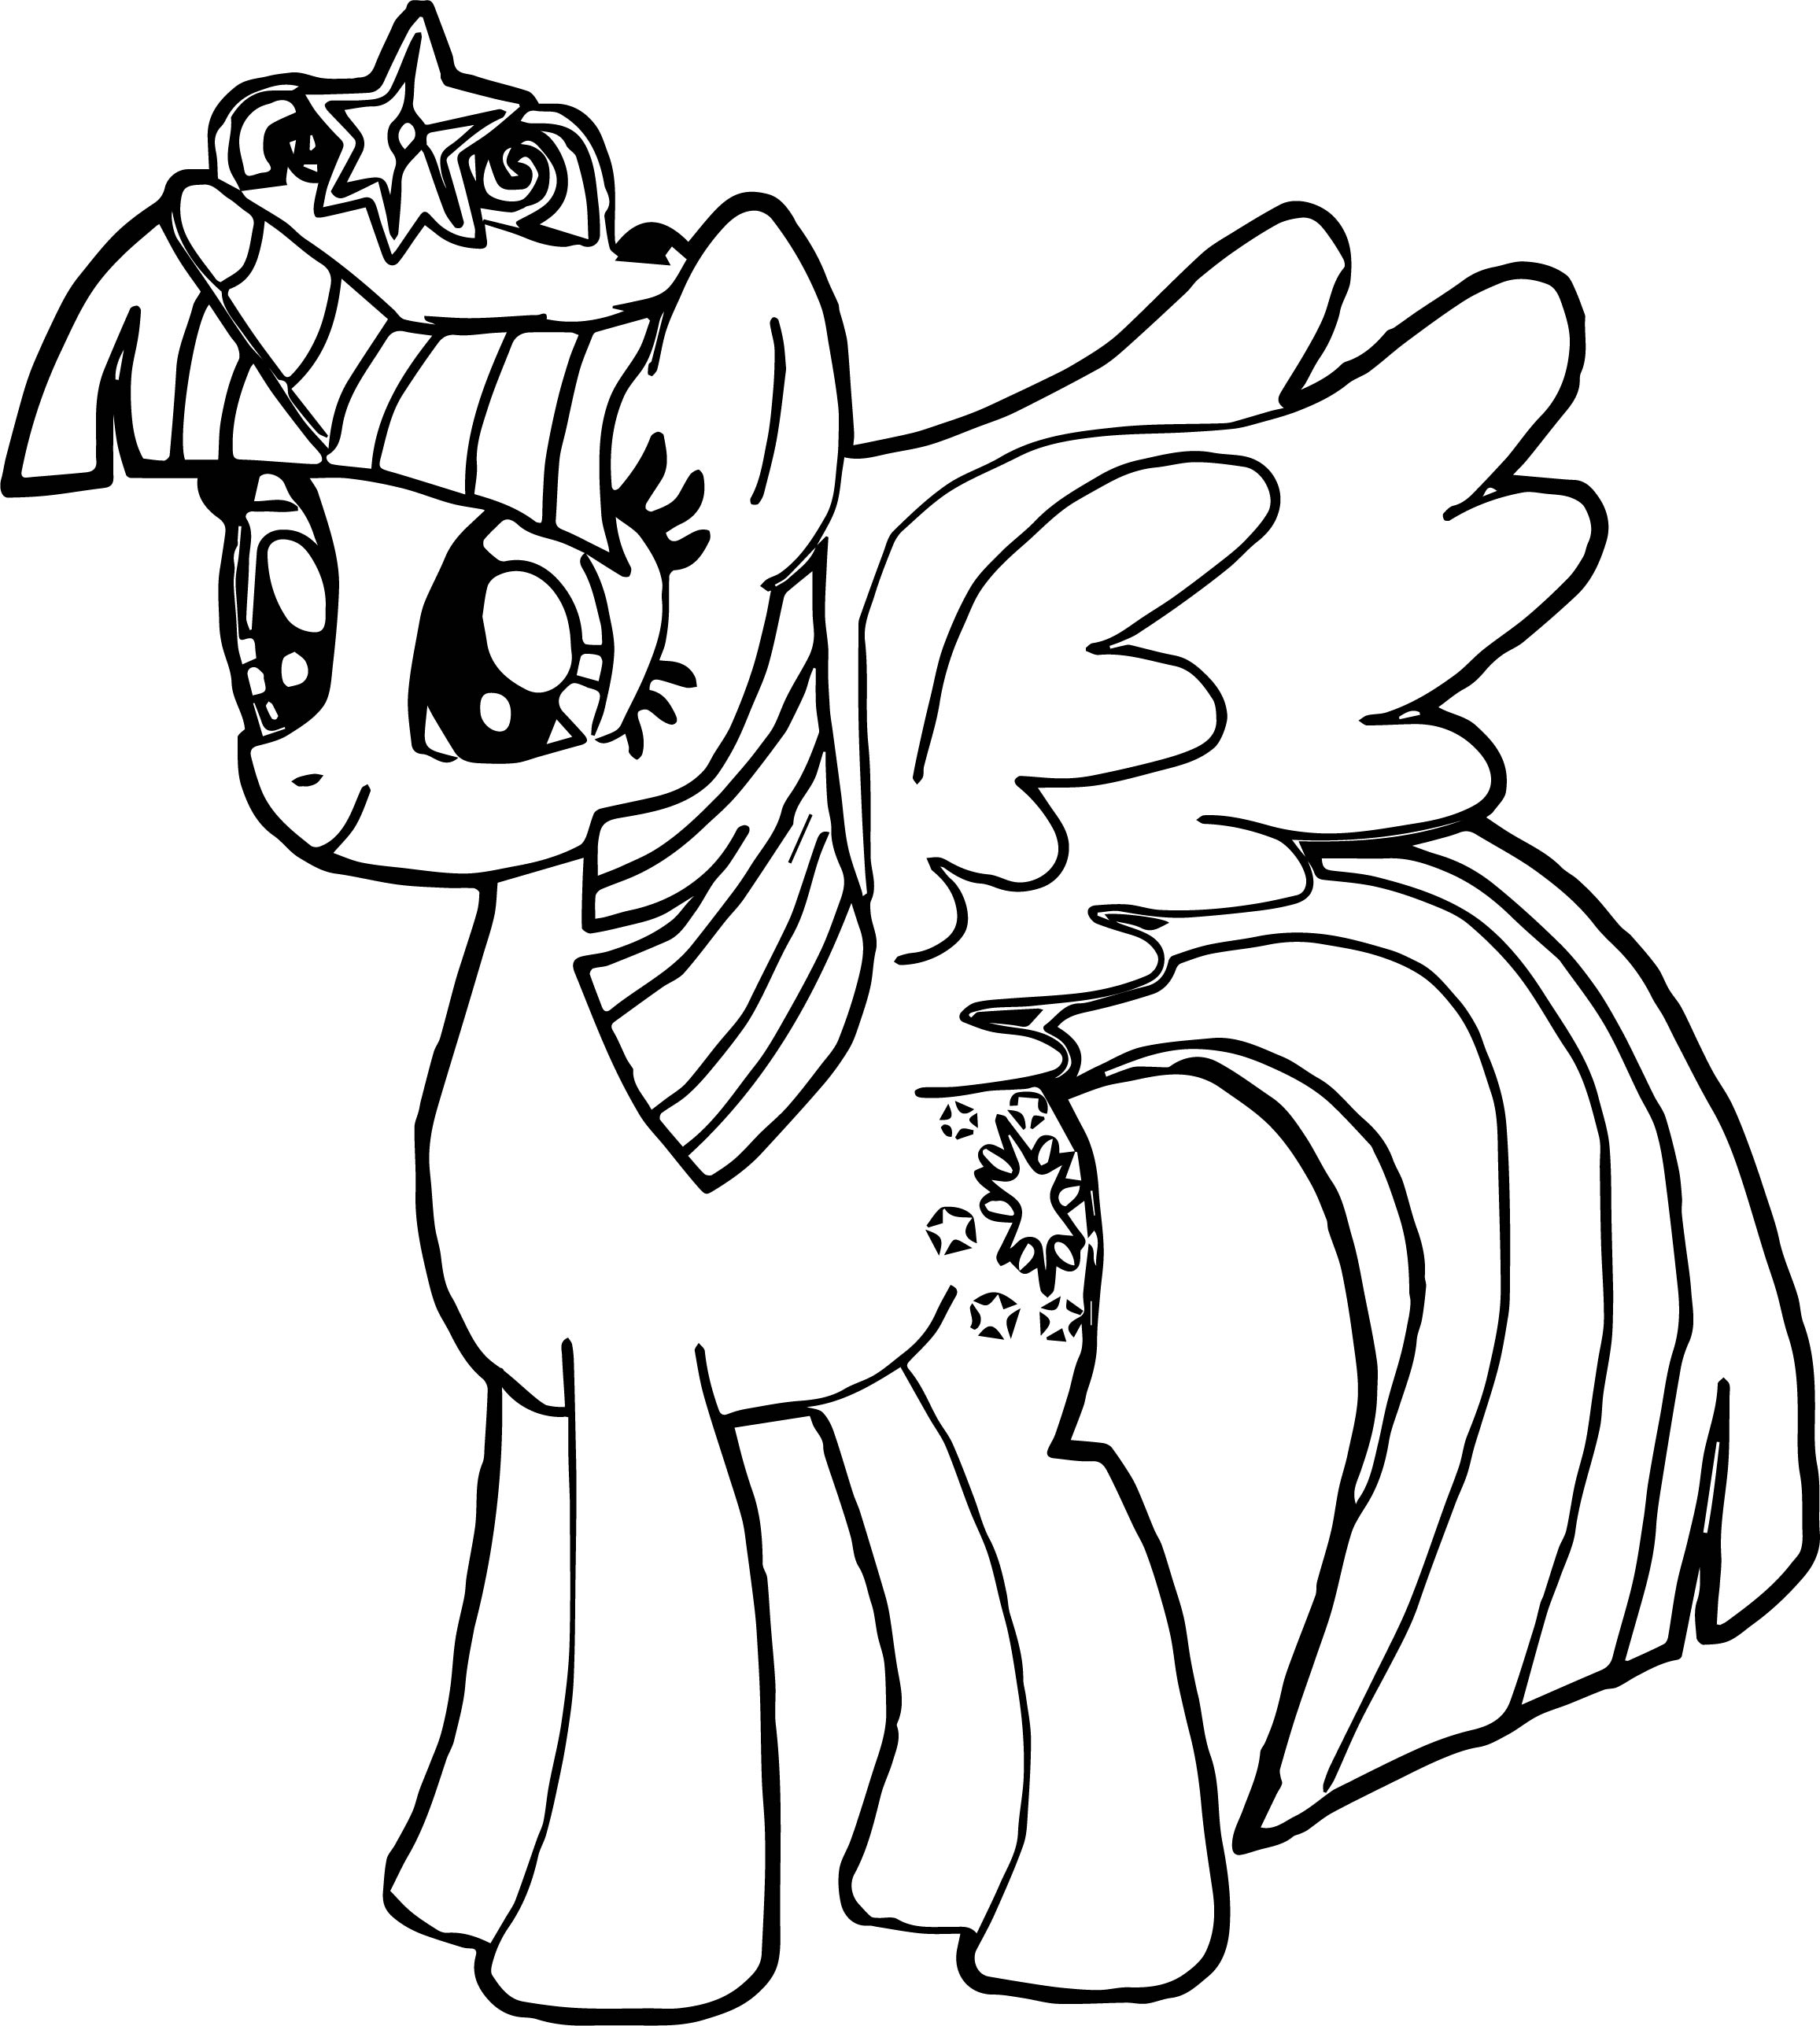 my little pony coloring pages twilight sparkle my little pony twilight sparkle 02 coloring page twilight coloring little pages my sparkle pony